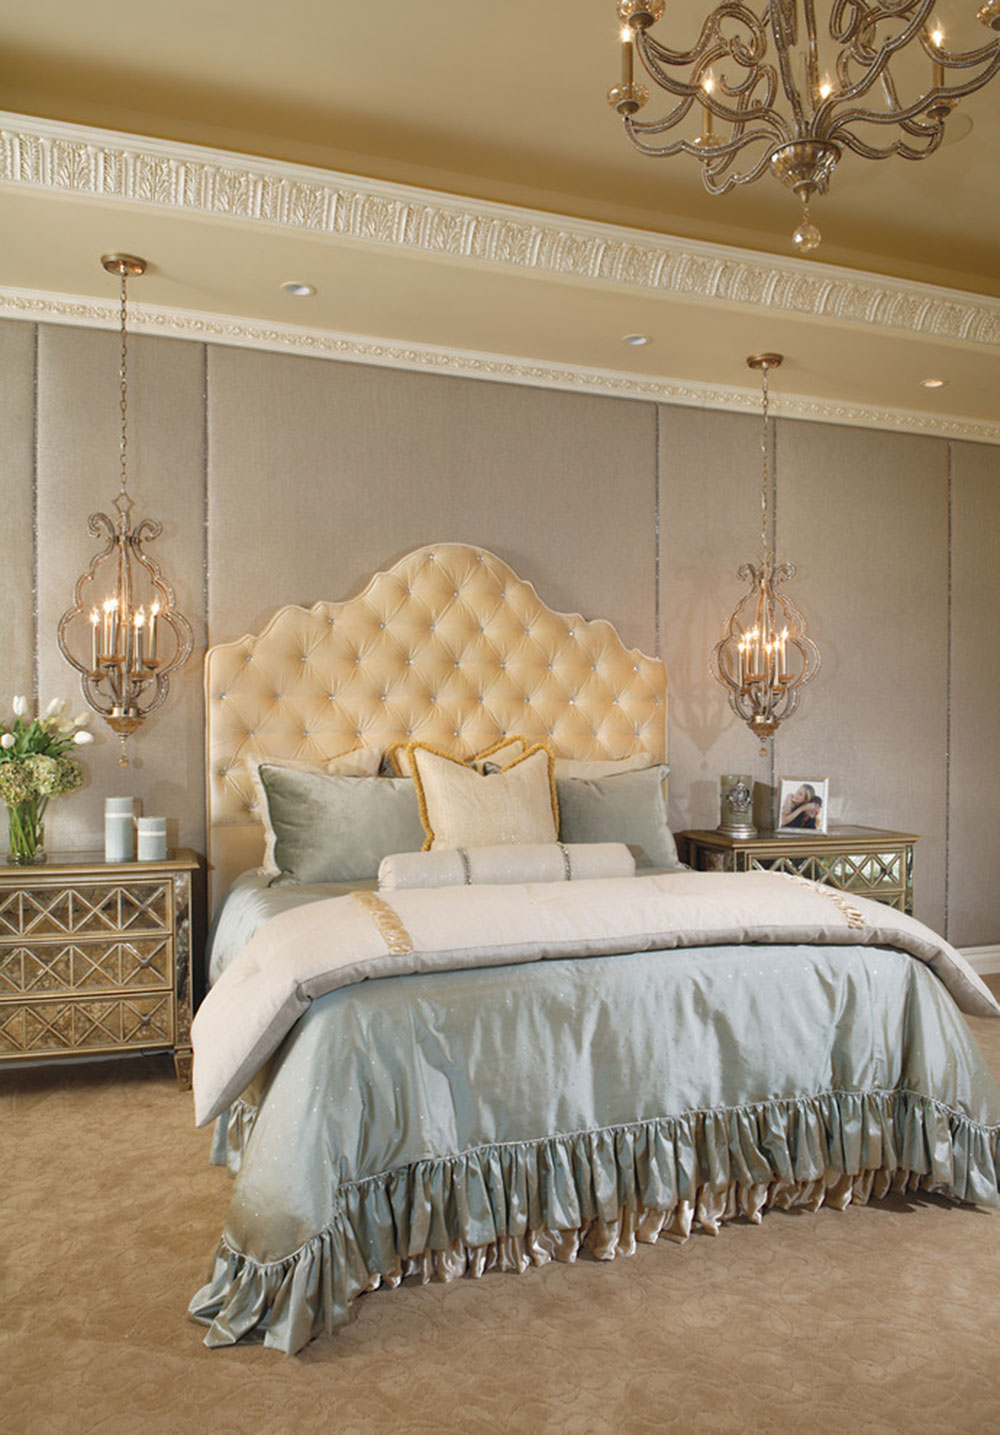 Great Ideas For Choosing A Headboard For Your Bed3 Great Ideas For Choosing A Headboard For Your Bed